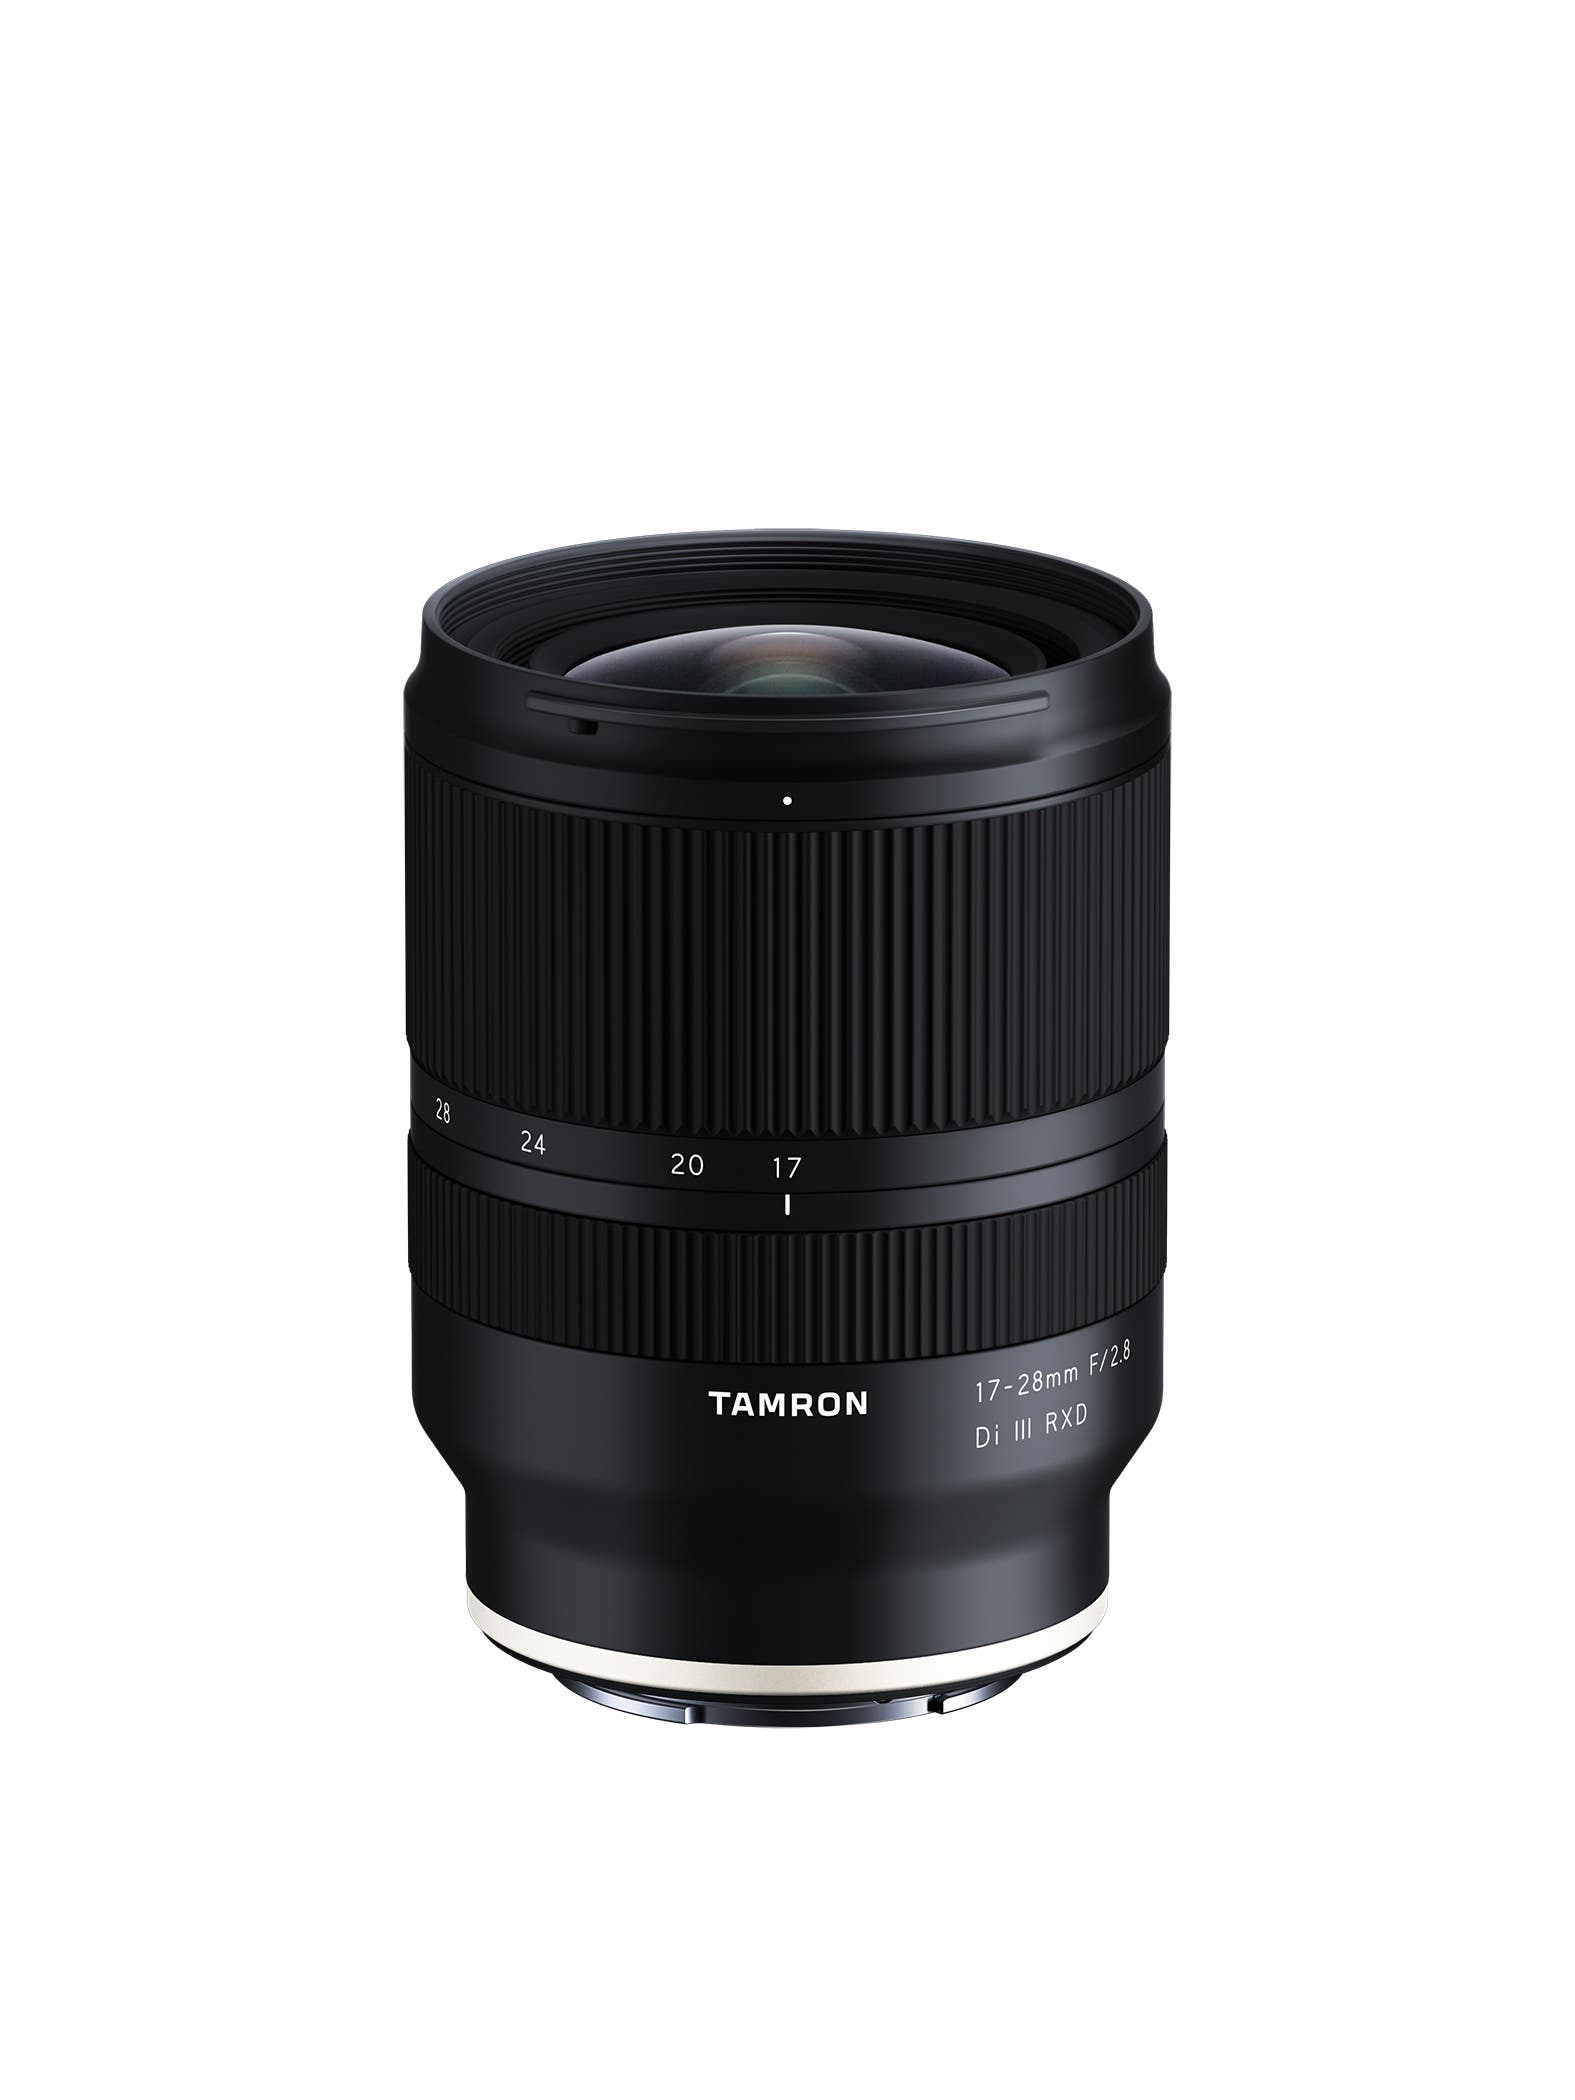 The Compact Tamron 17-28mm F2.8 Di III RXD Will Cost $899 in July